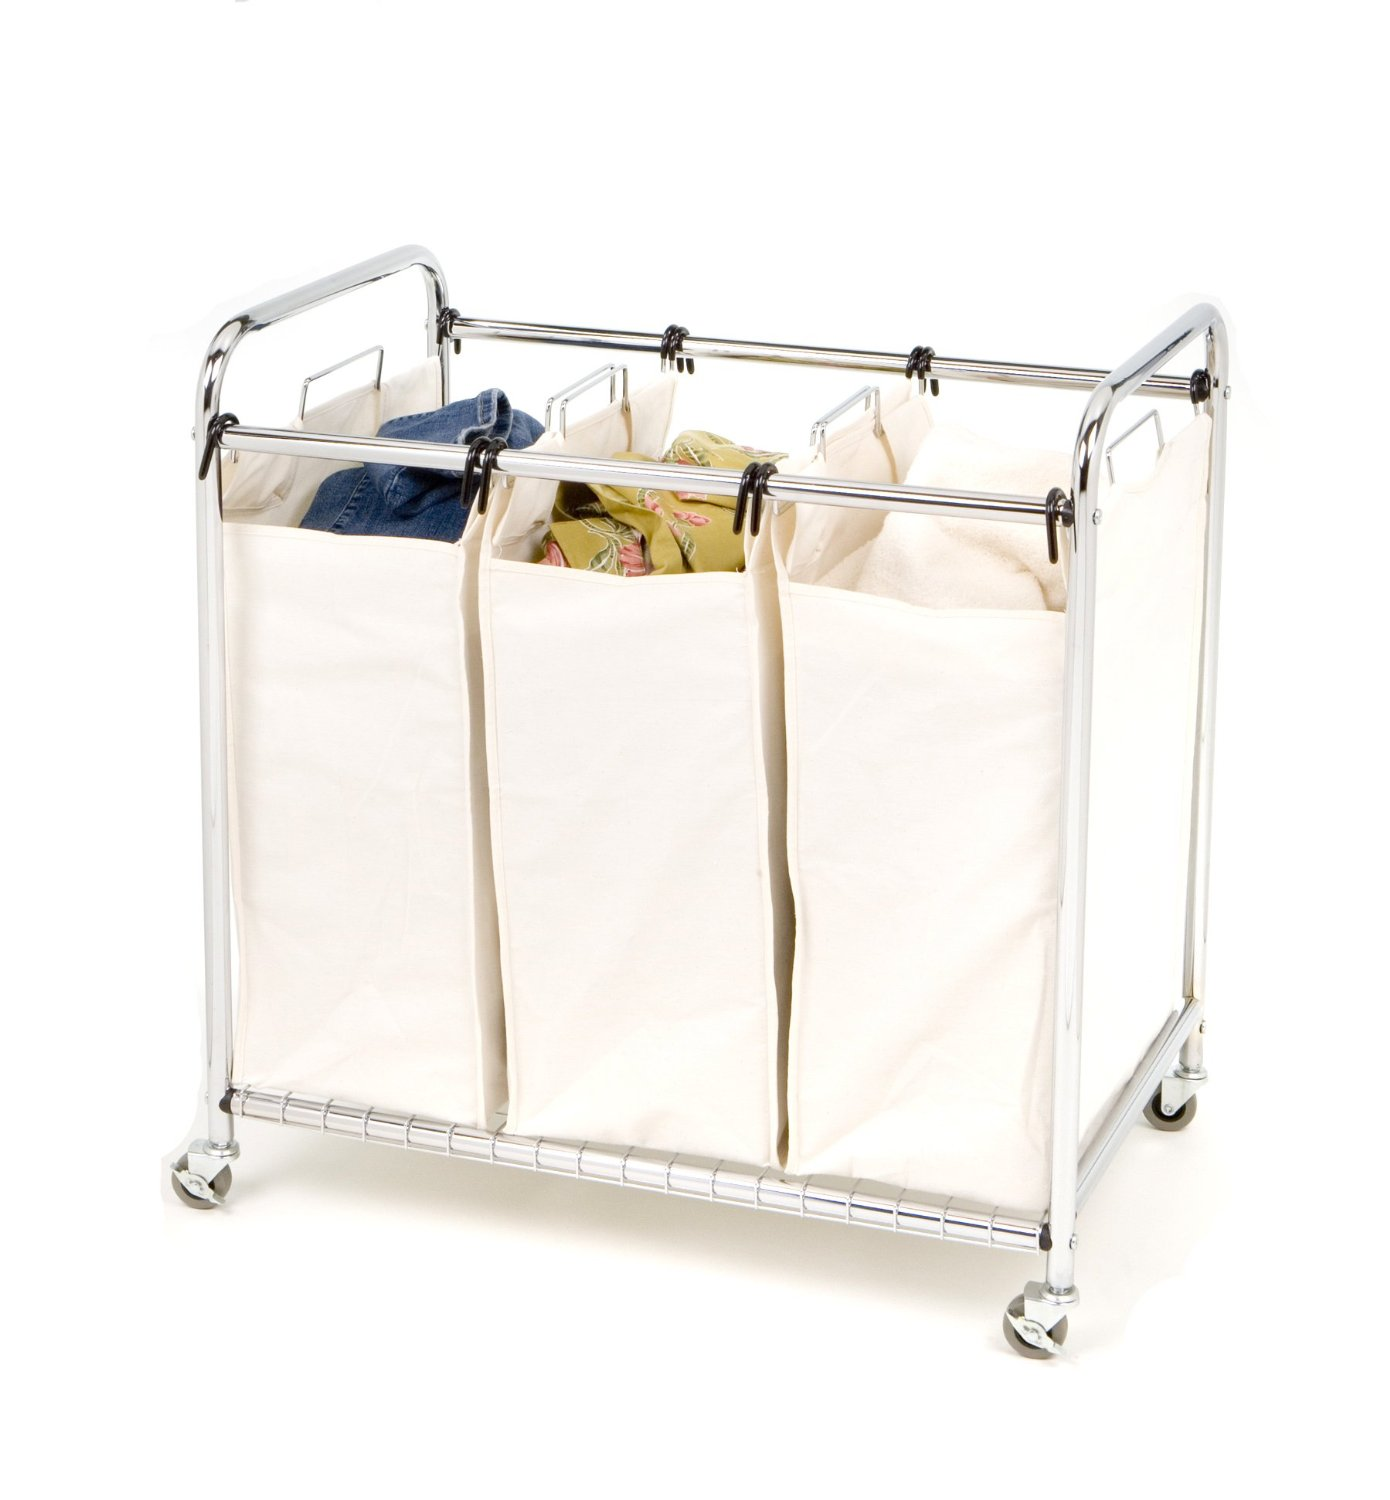 3 Section Laundry Hamper